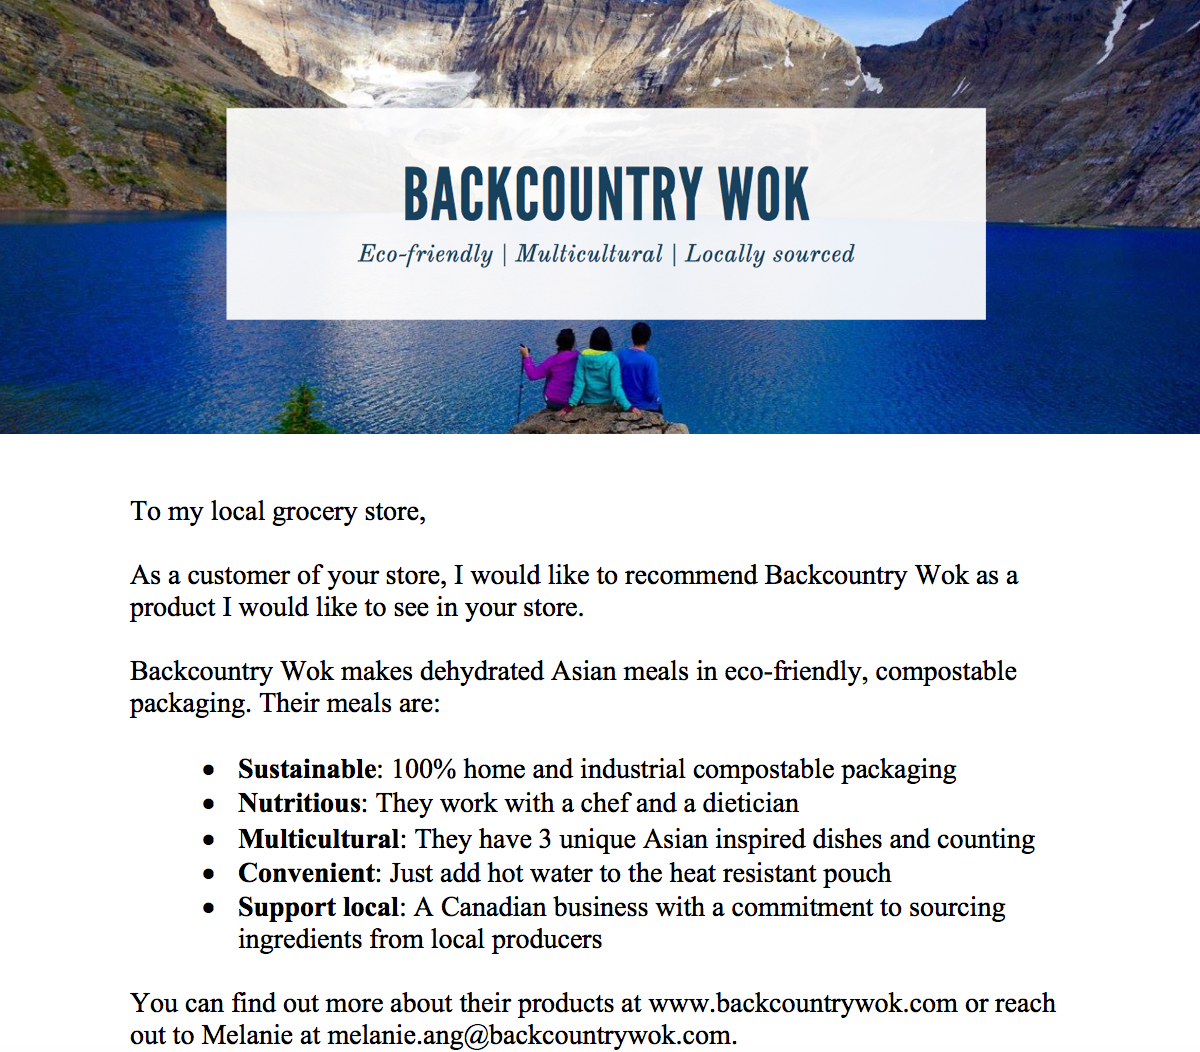 Backcountry wok retail stores